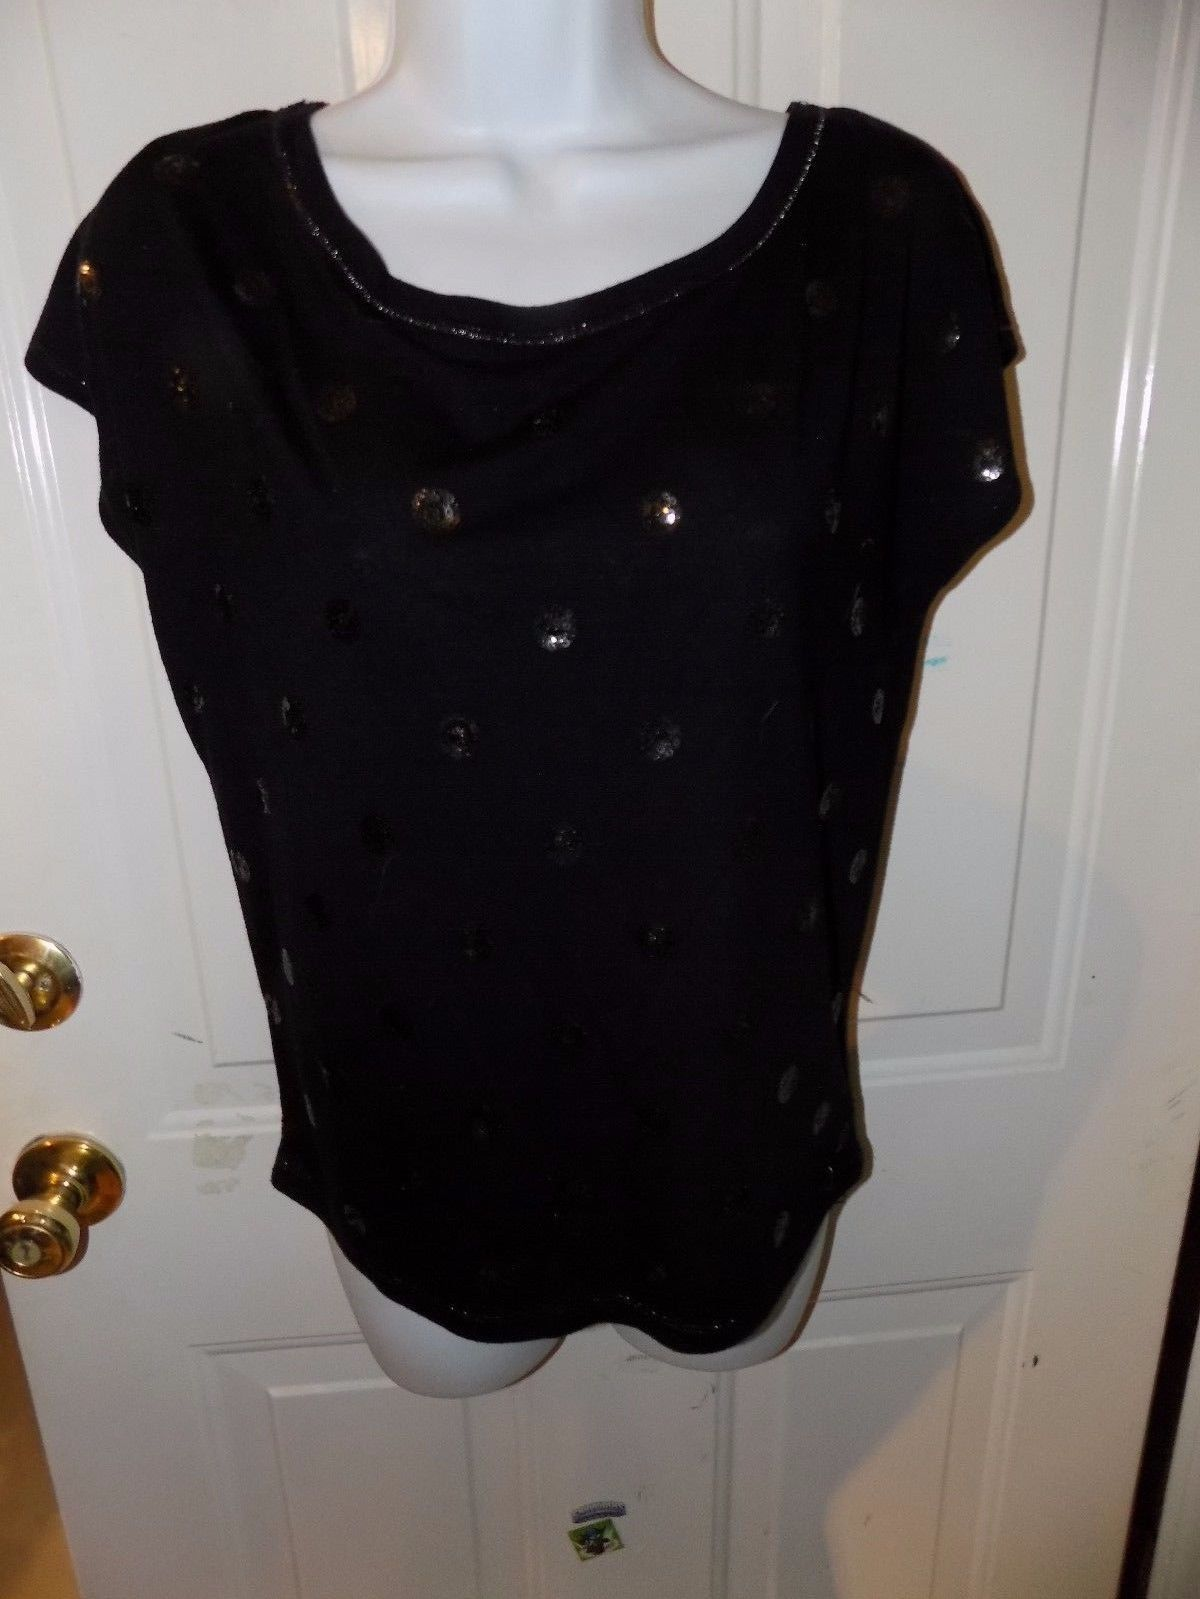 Primary image for AEROPOSTALE BLACK SEQUIN DOT SHIRT TOP TEE SIZE S WOMEN'S EUC